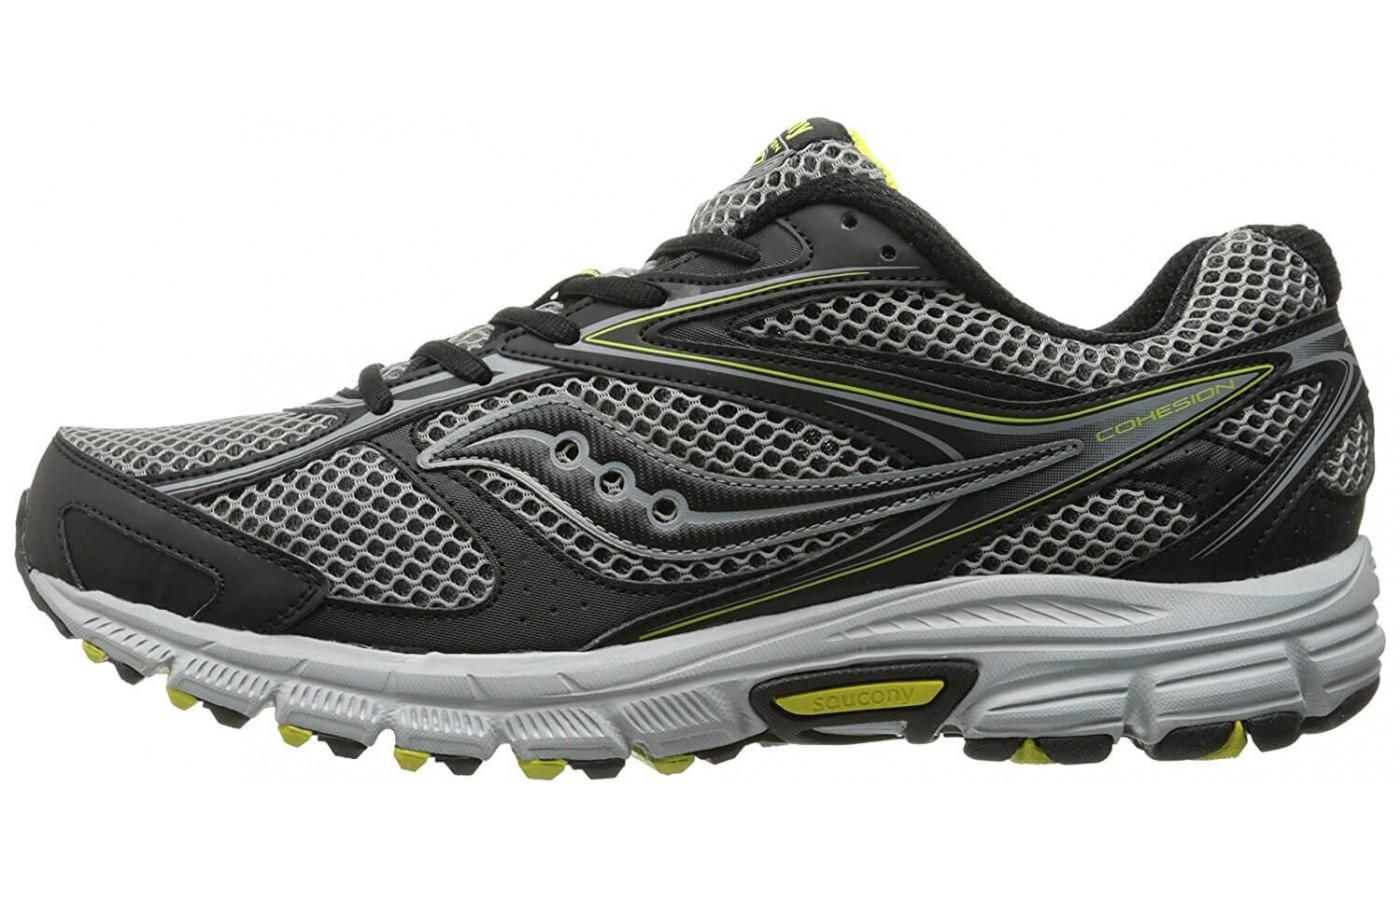 some reviewers liked the look of the Saucony Cohesion TR 8, while others didn't like the muted colors